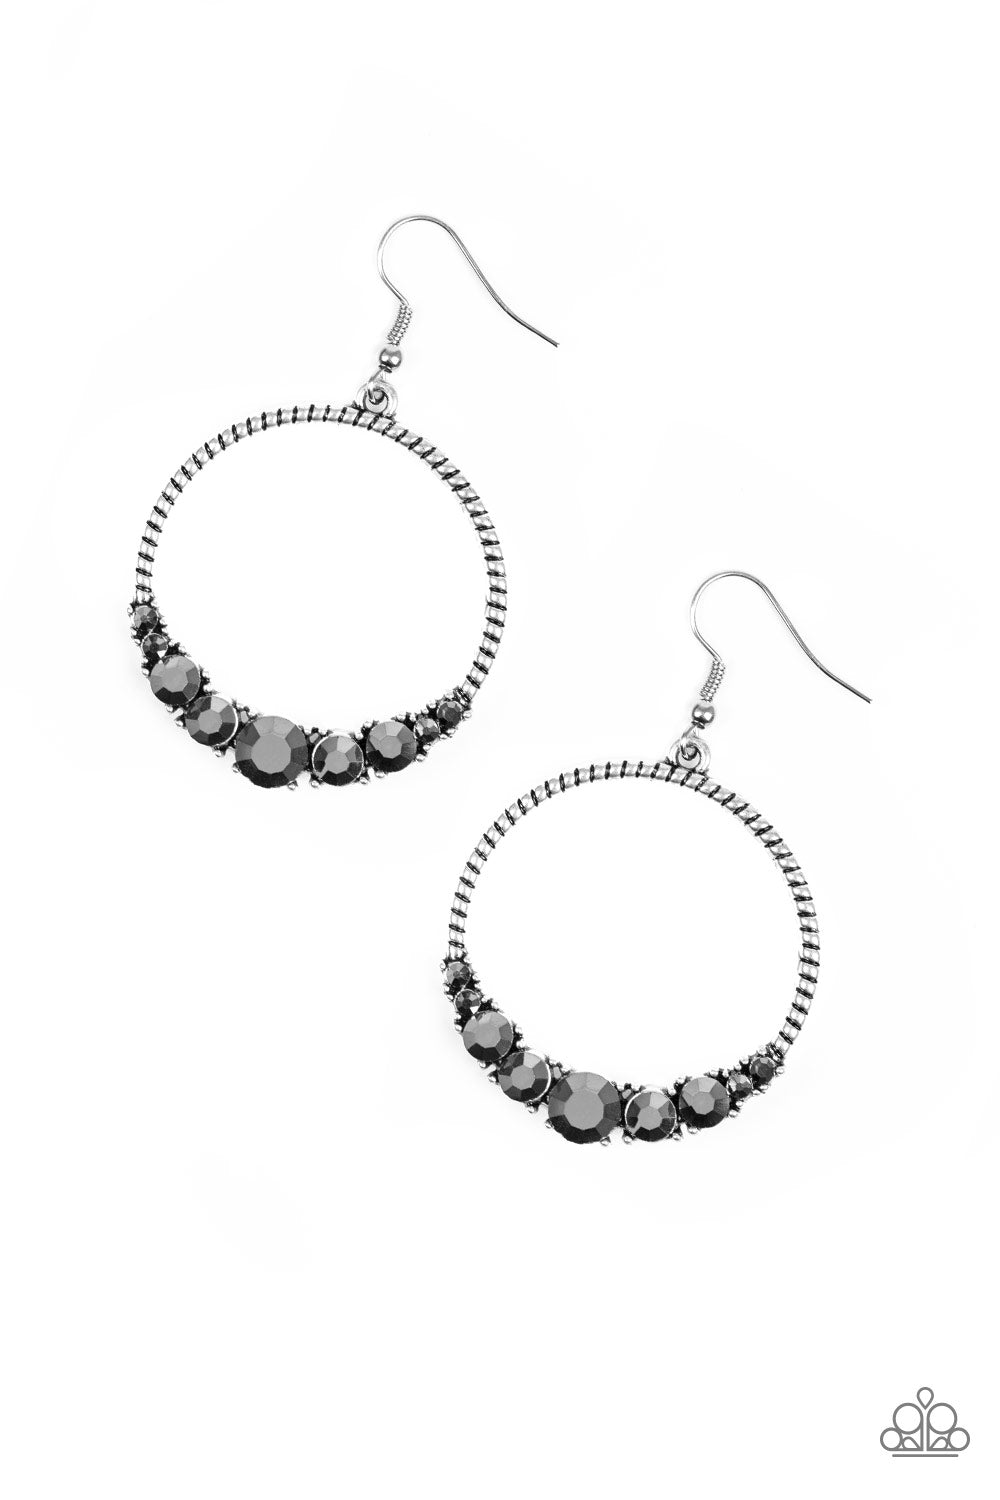 Paparazzi Accessories - Self-Made Millionaire - Silver Earrings - JMJ Jewelry Collection